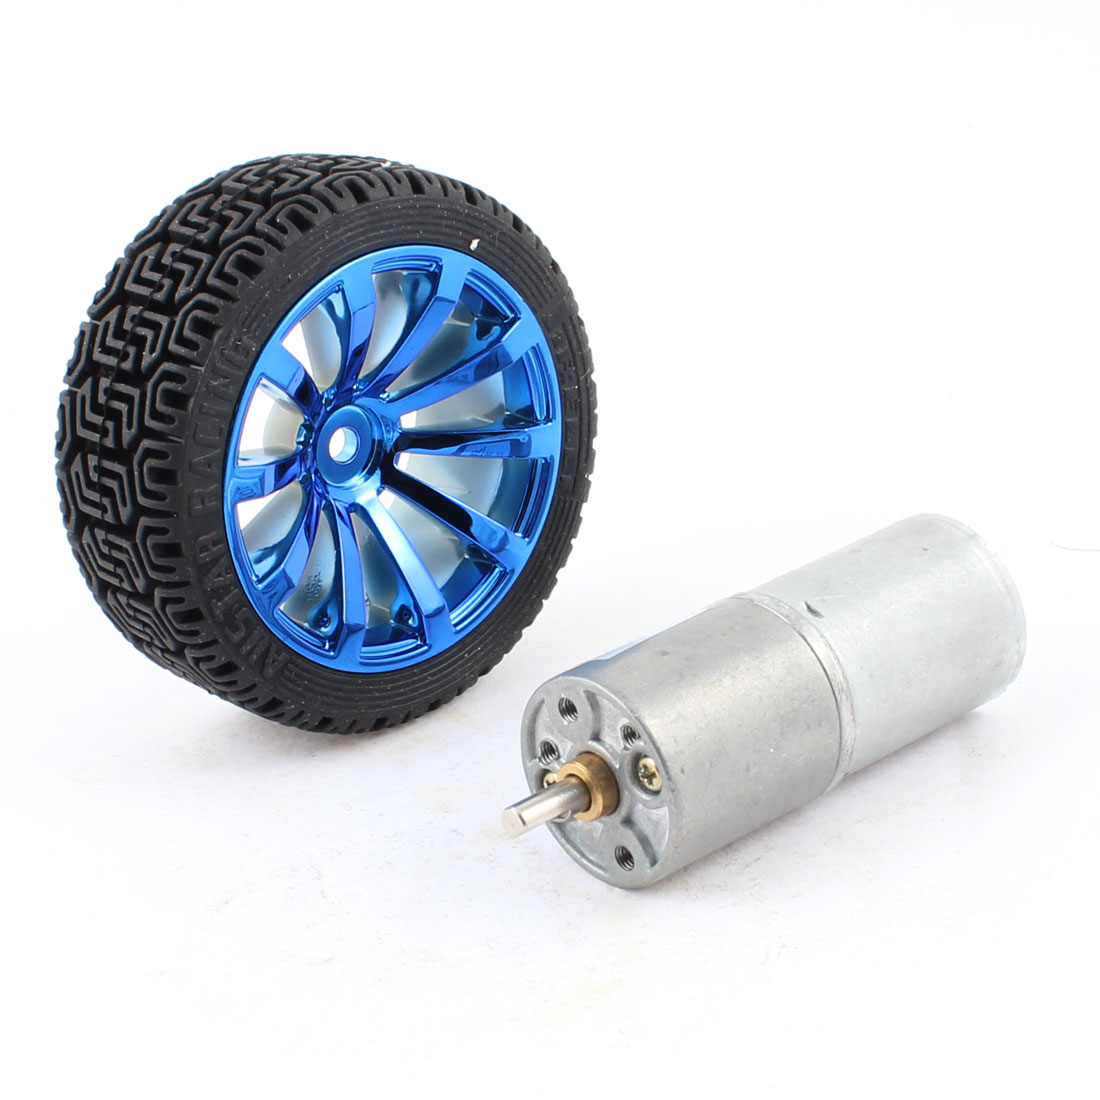 24RPM 12V Gear Box N20 DC Motor + Tire Wheel for Remote Control Car